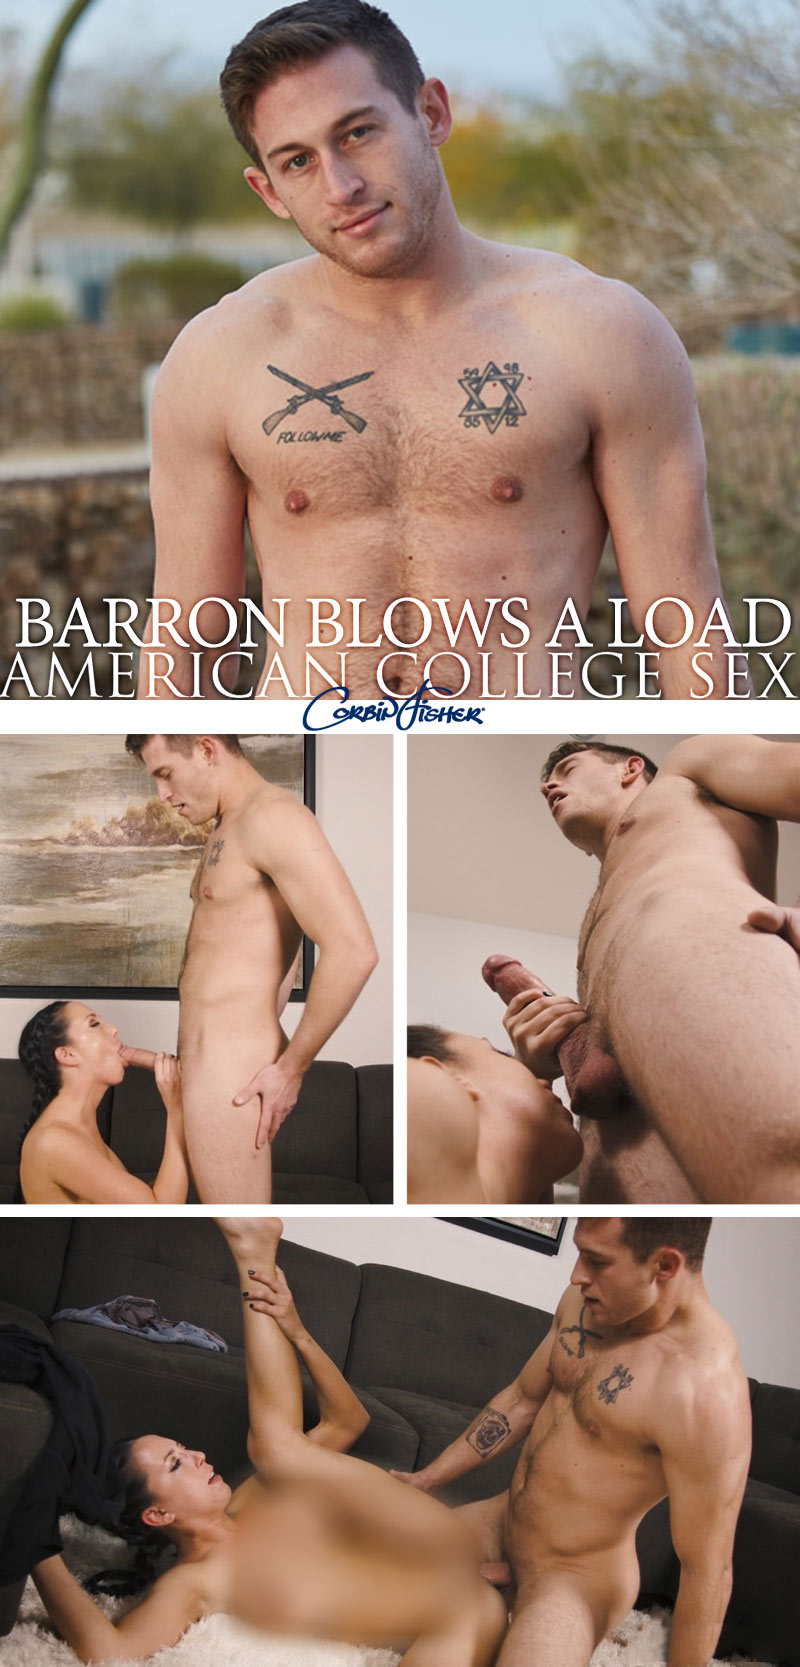 Barron Blows A Load at AmateurCollegeSex